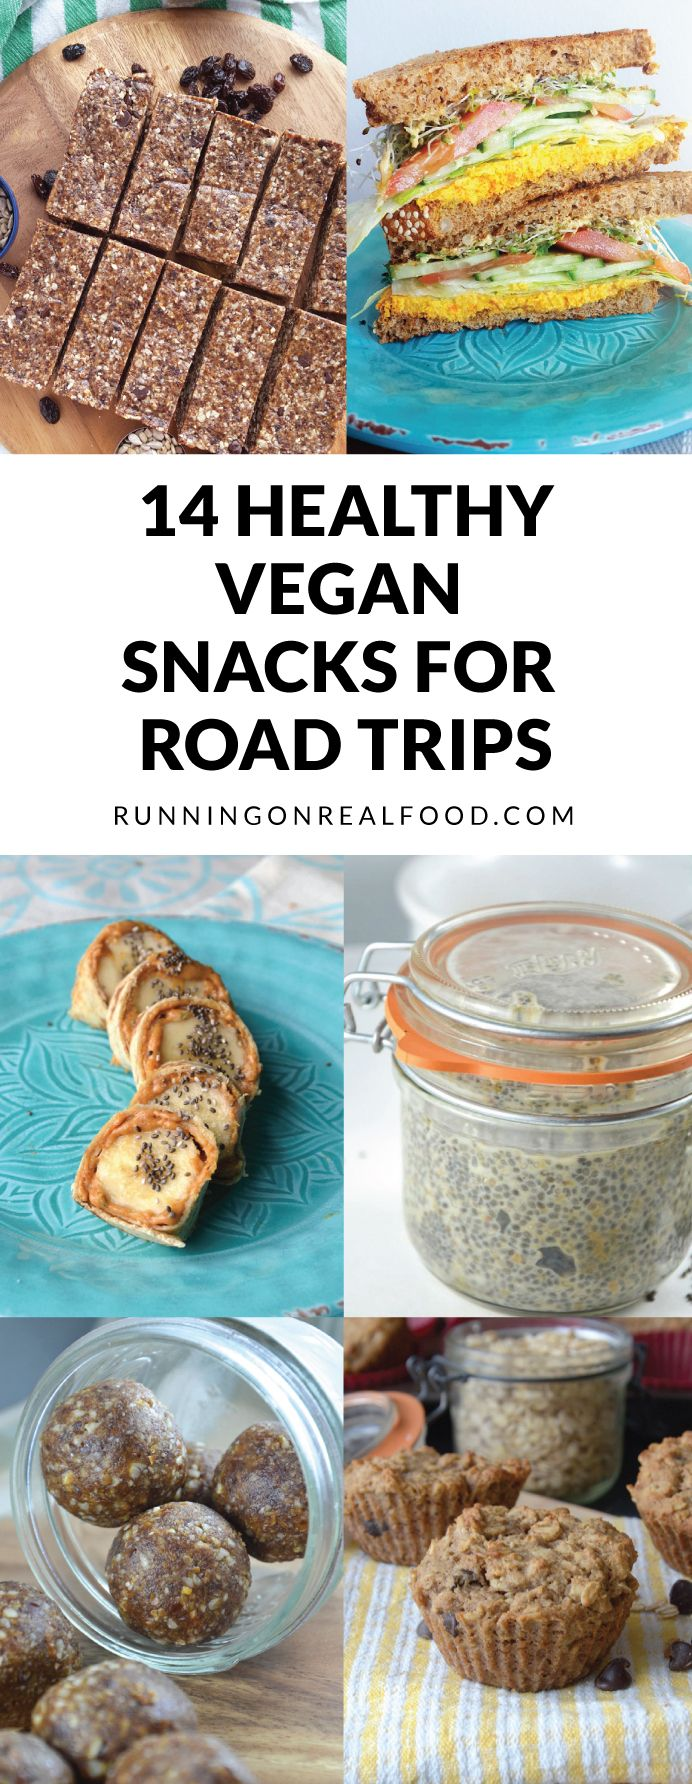 14 Healthy Vegan Snacks for Road Trips (Or Anytime!)